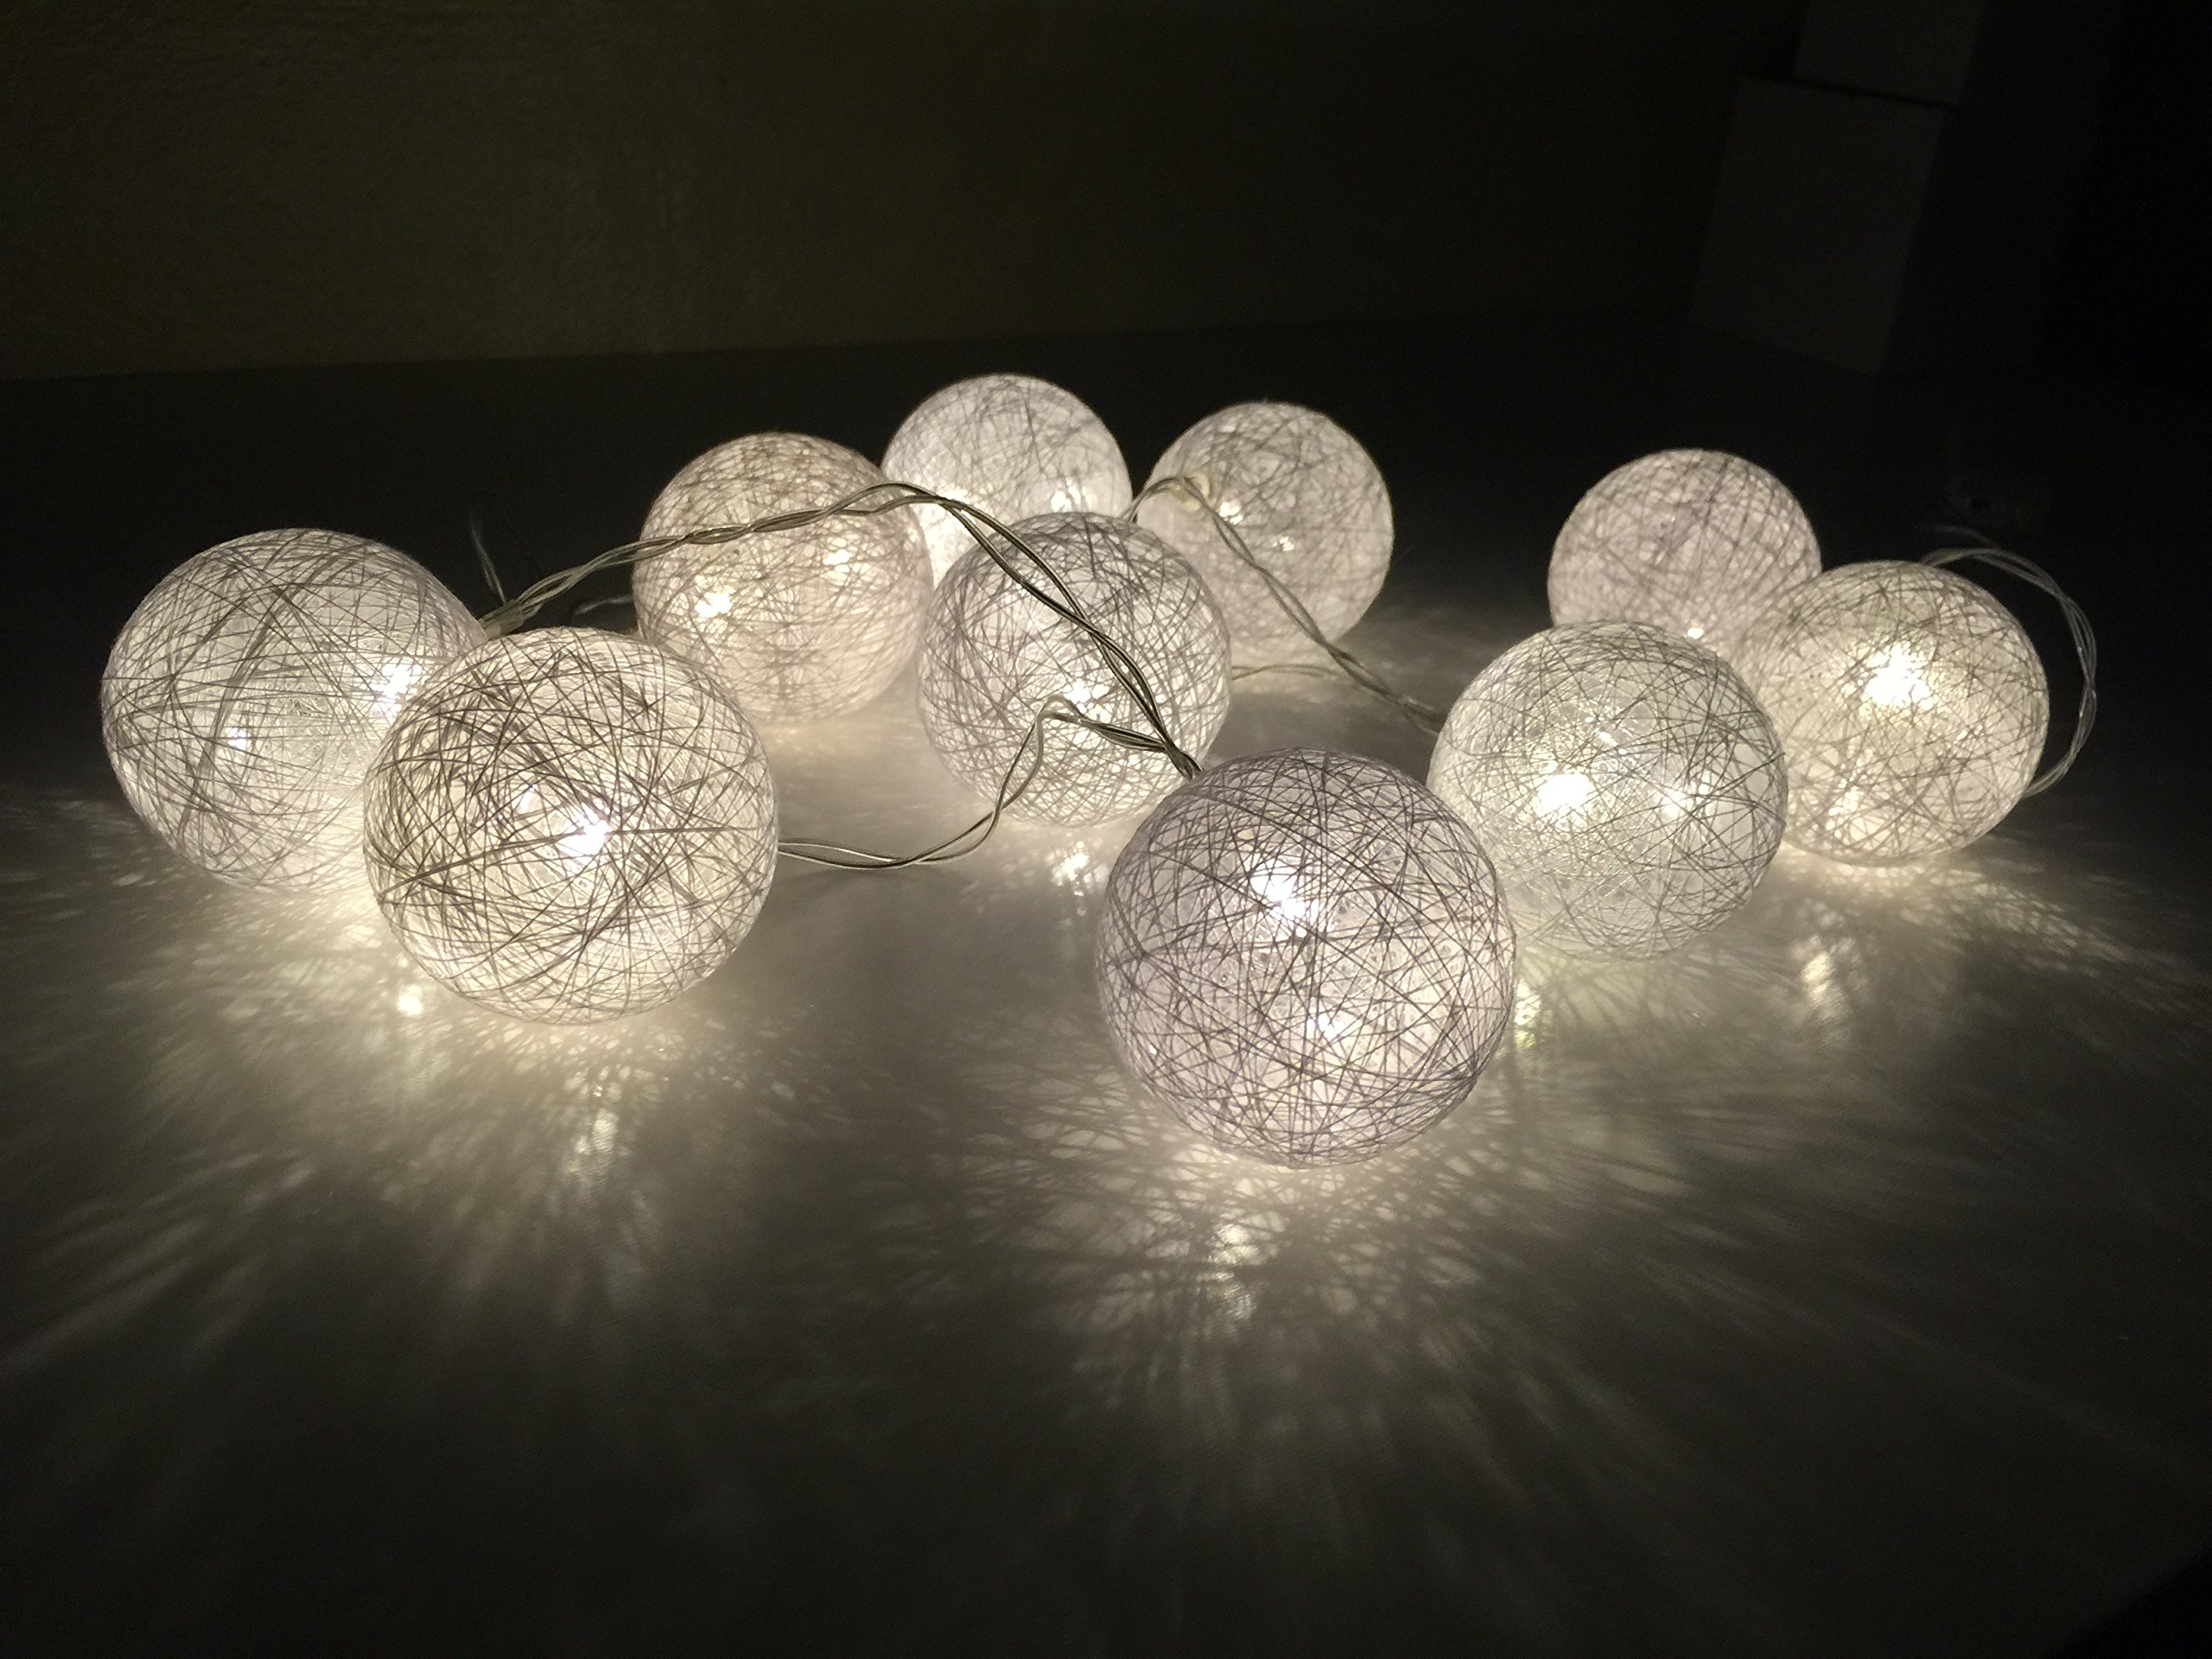 Decoarts LED String Lights in Warm Color Cotton Balls 6 ft.Indoor Outdoor Party Decoration 10 Lights (1)